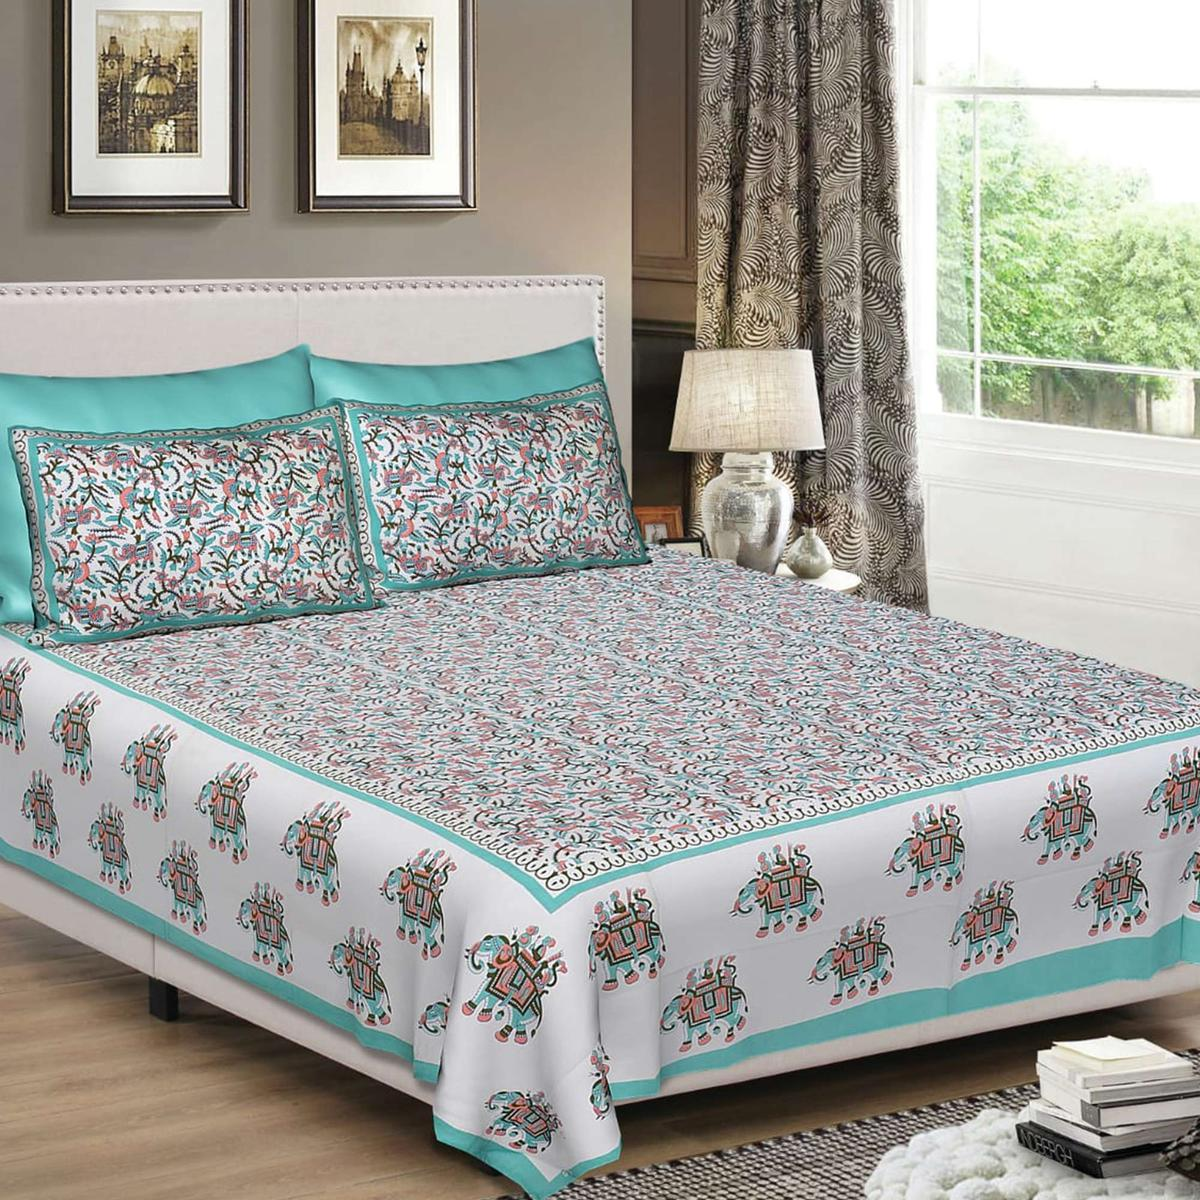 Breathtaking Green-Off White Colored Printed Cotton King Size Bedsheet With 2 Pillow Cover